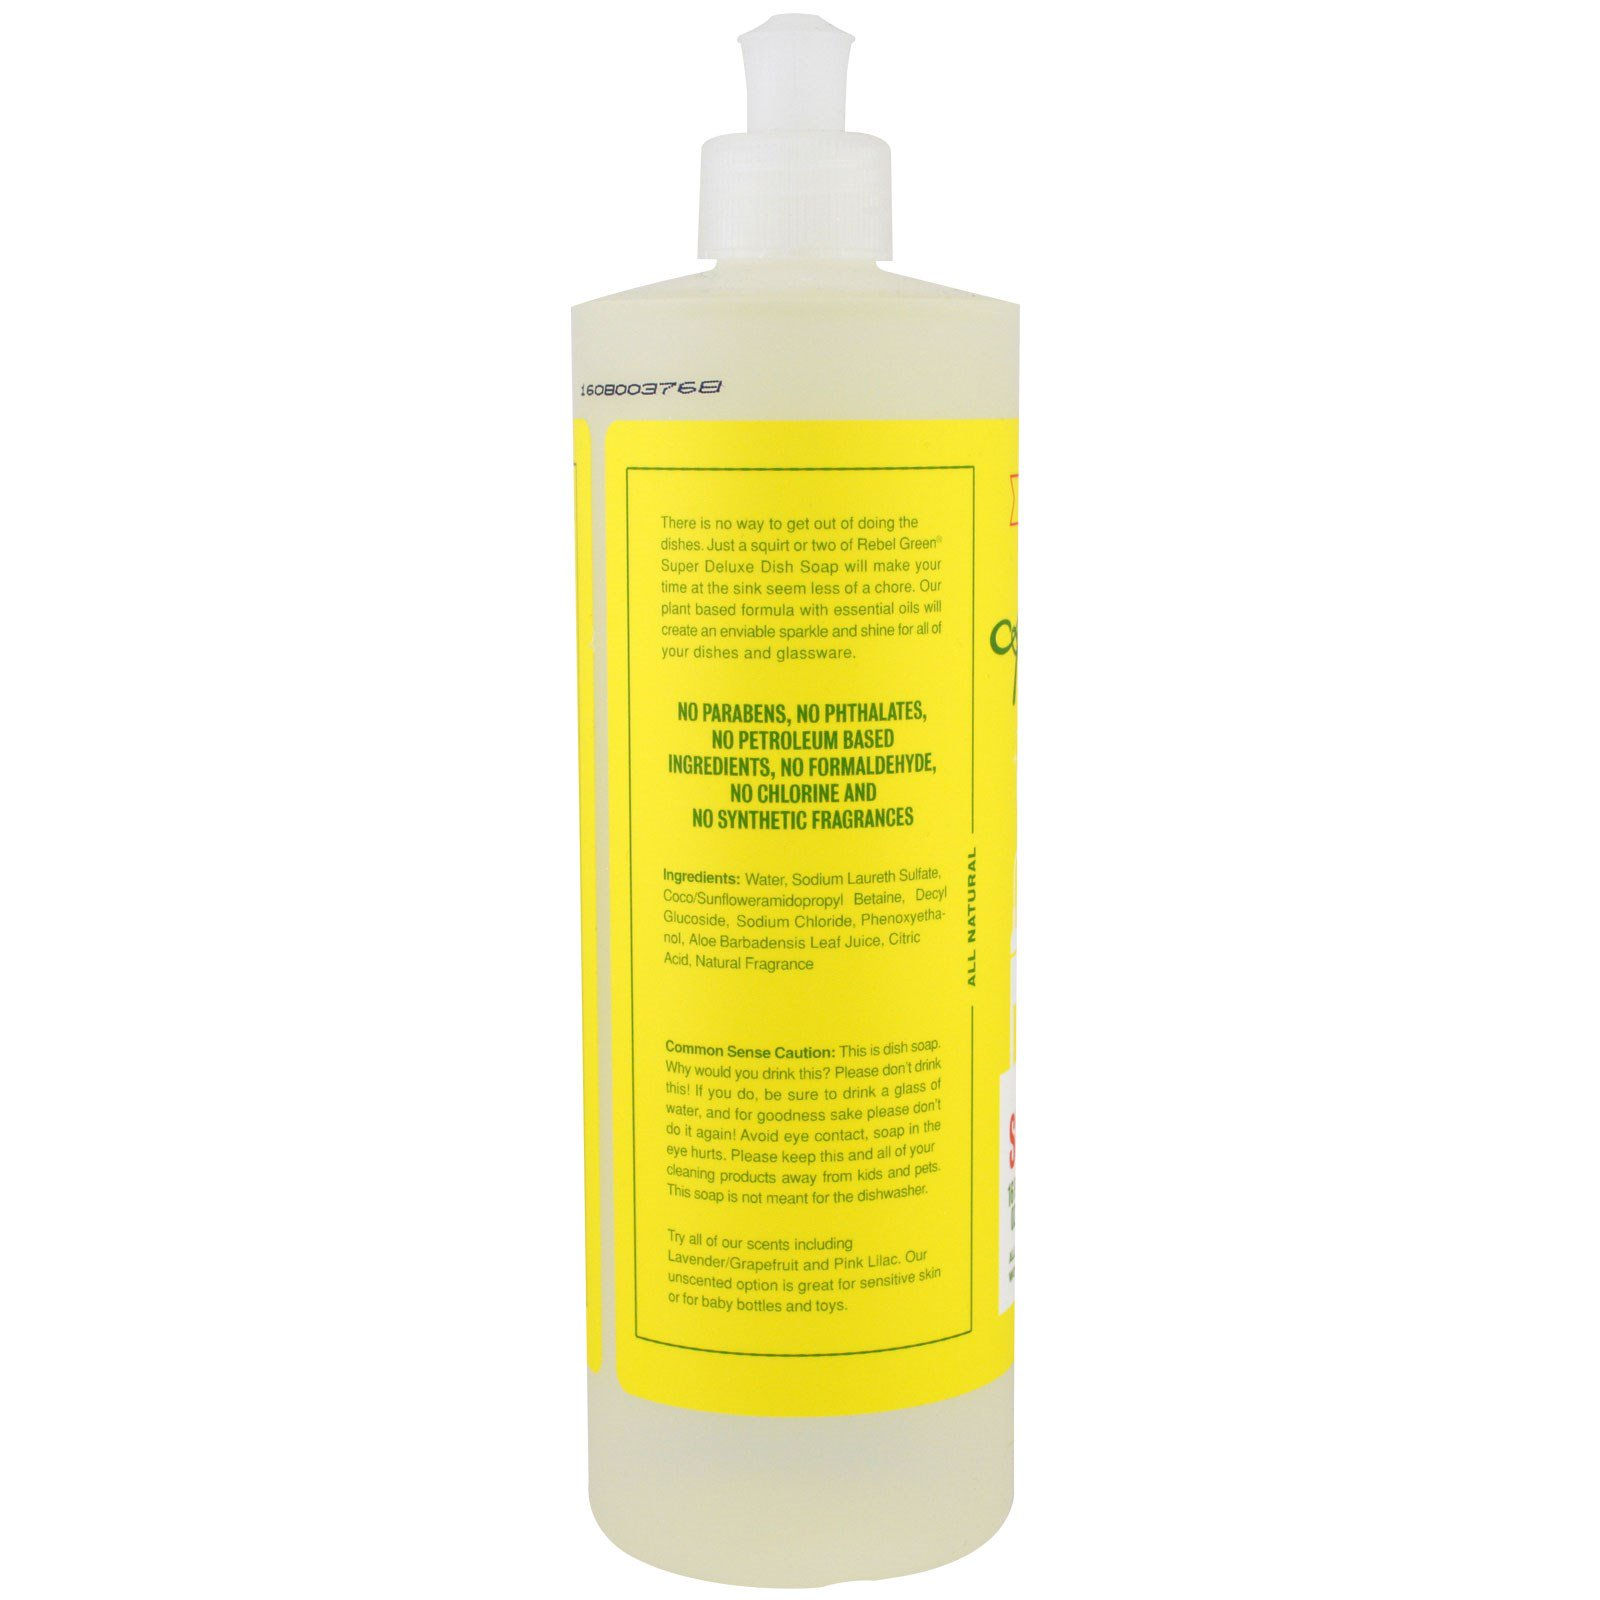 Rebel Green, Super Deluxe Dish Soap, Peppermint and Lemon